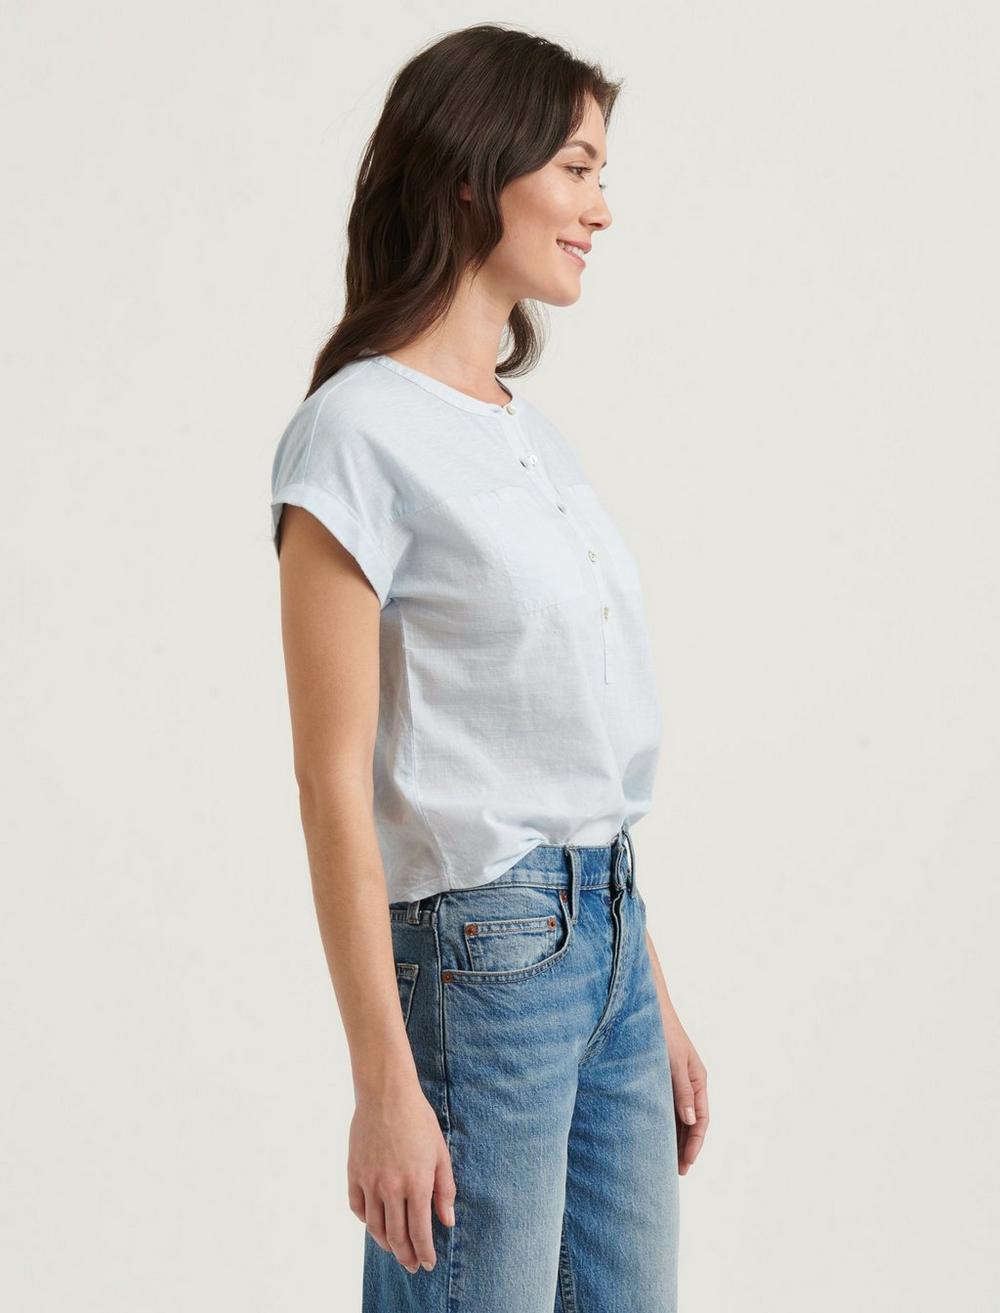 KNIT TOP, image 3